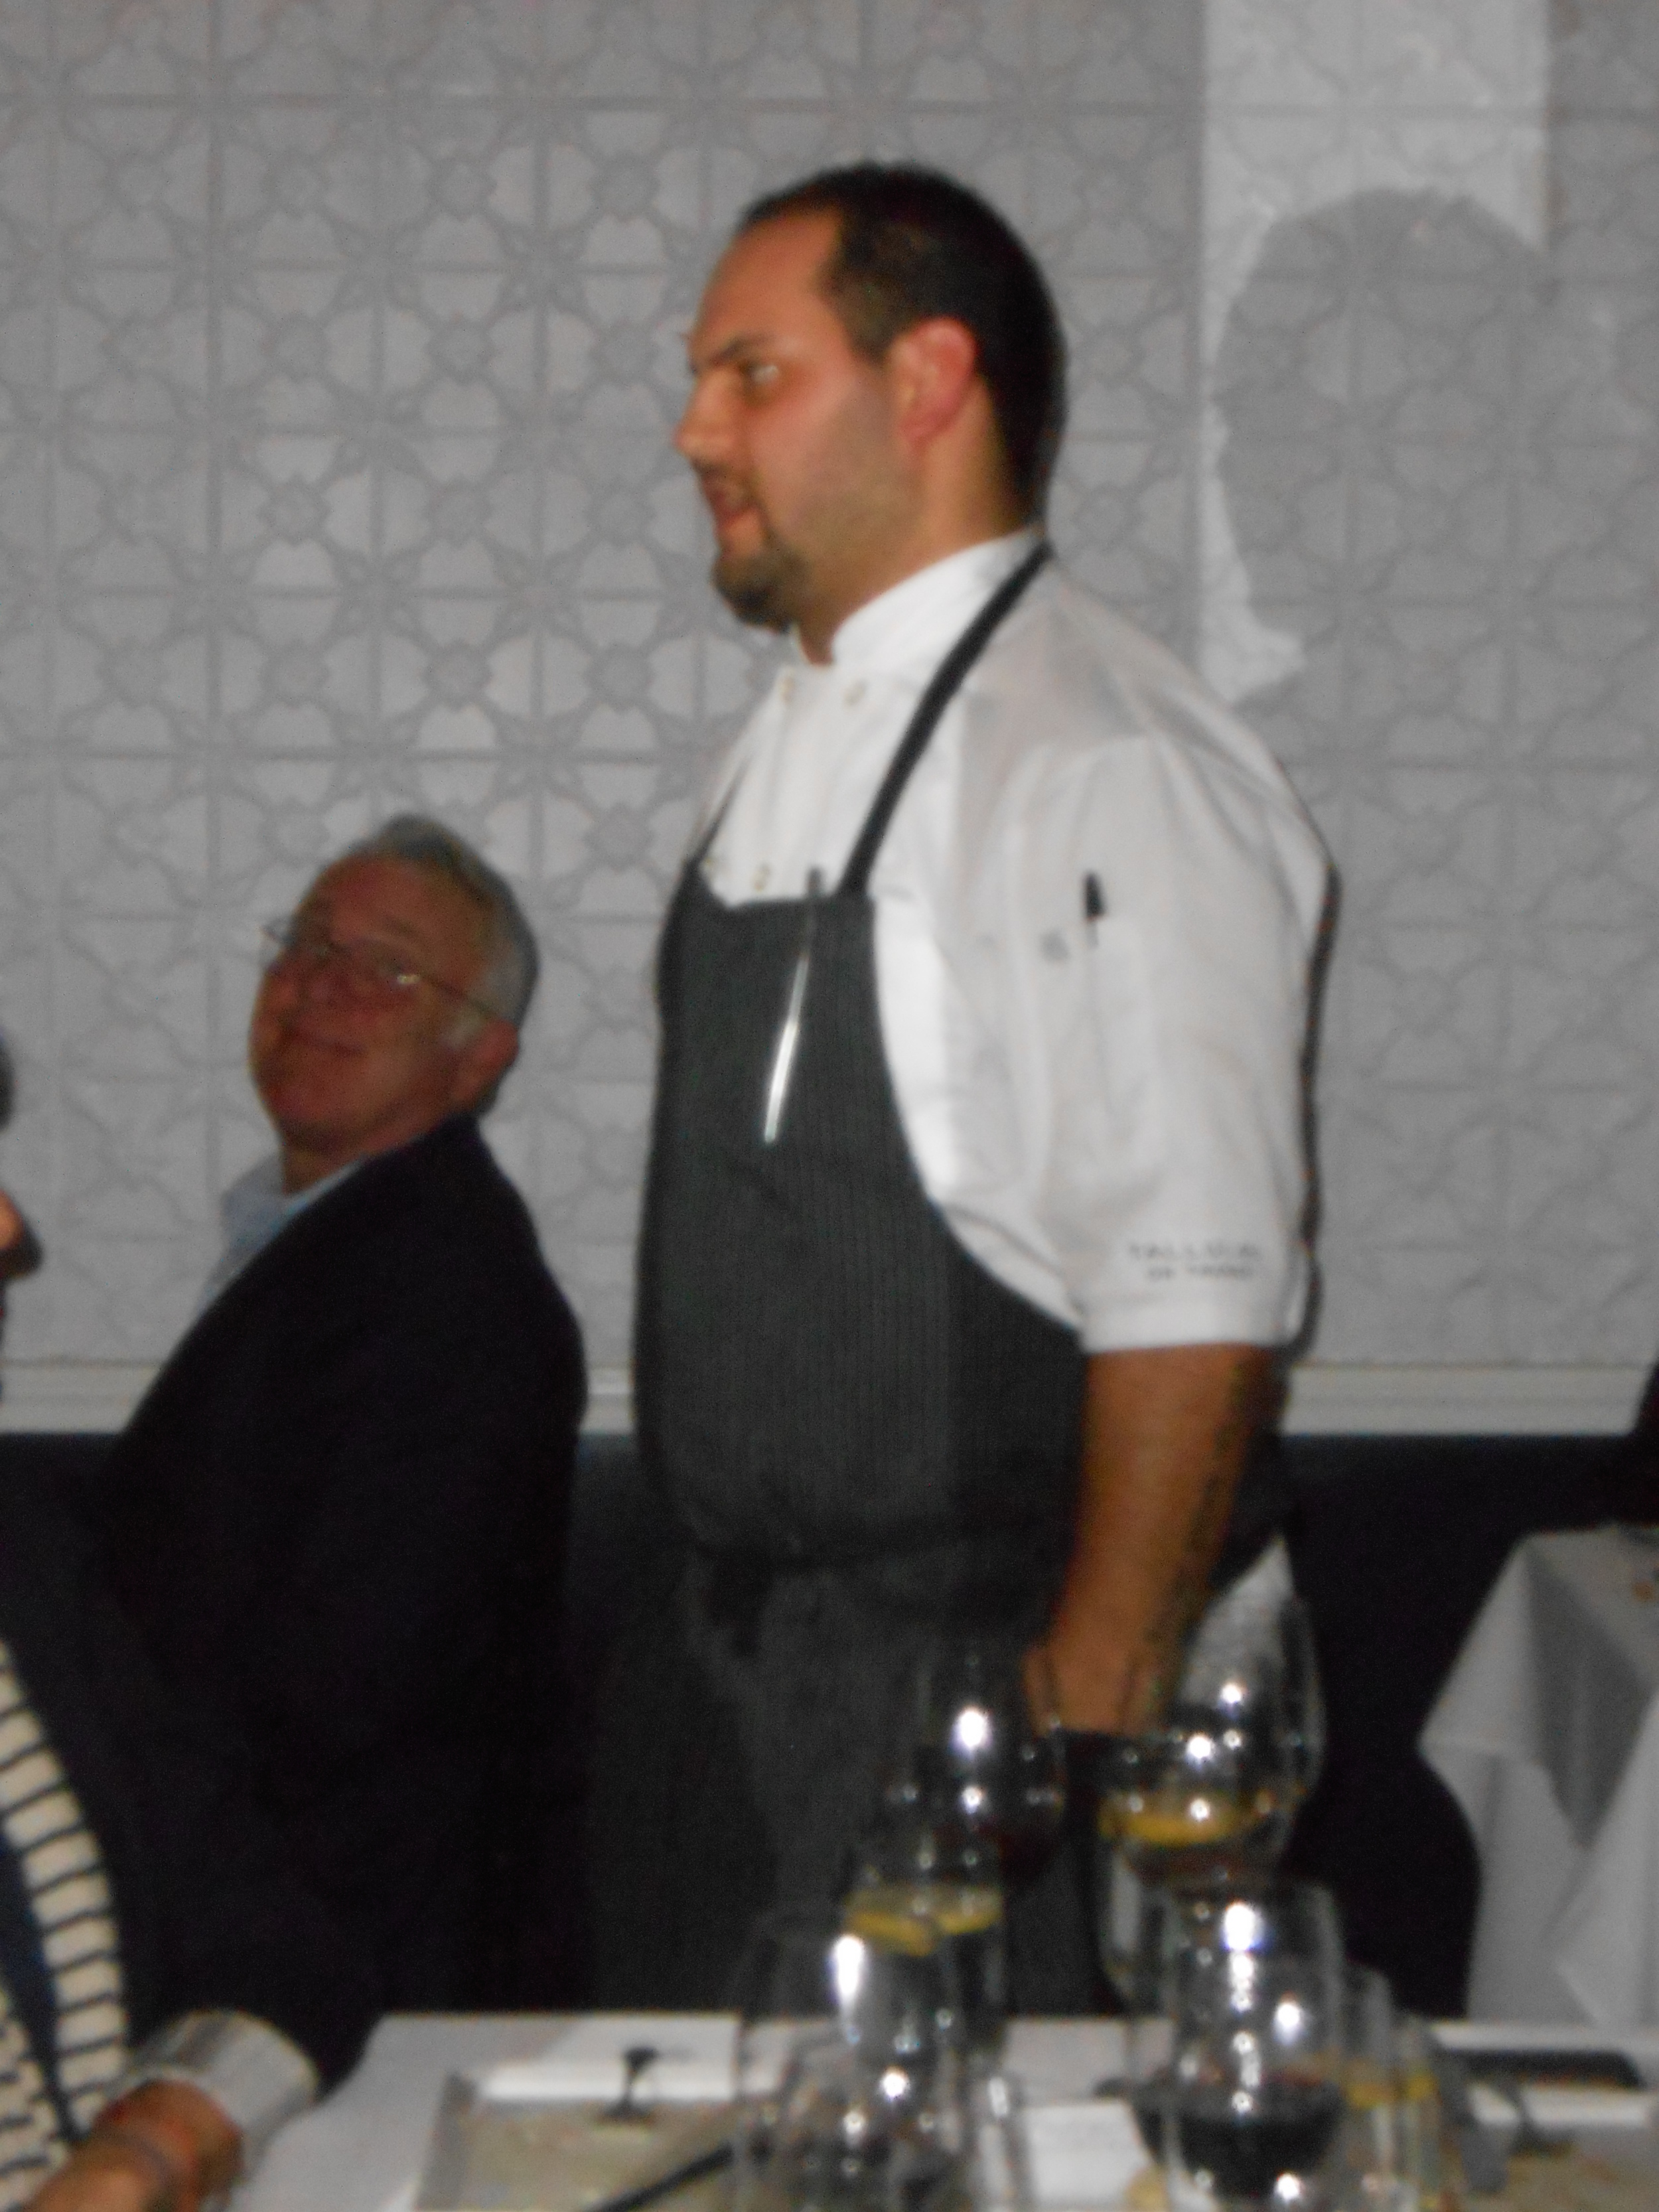 Chef Jake Rojas joins the conversation